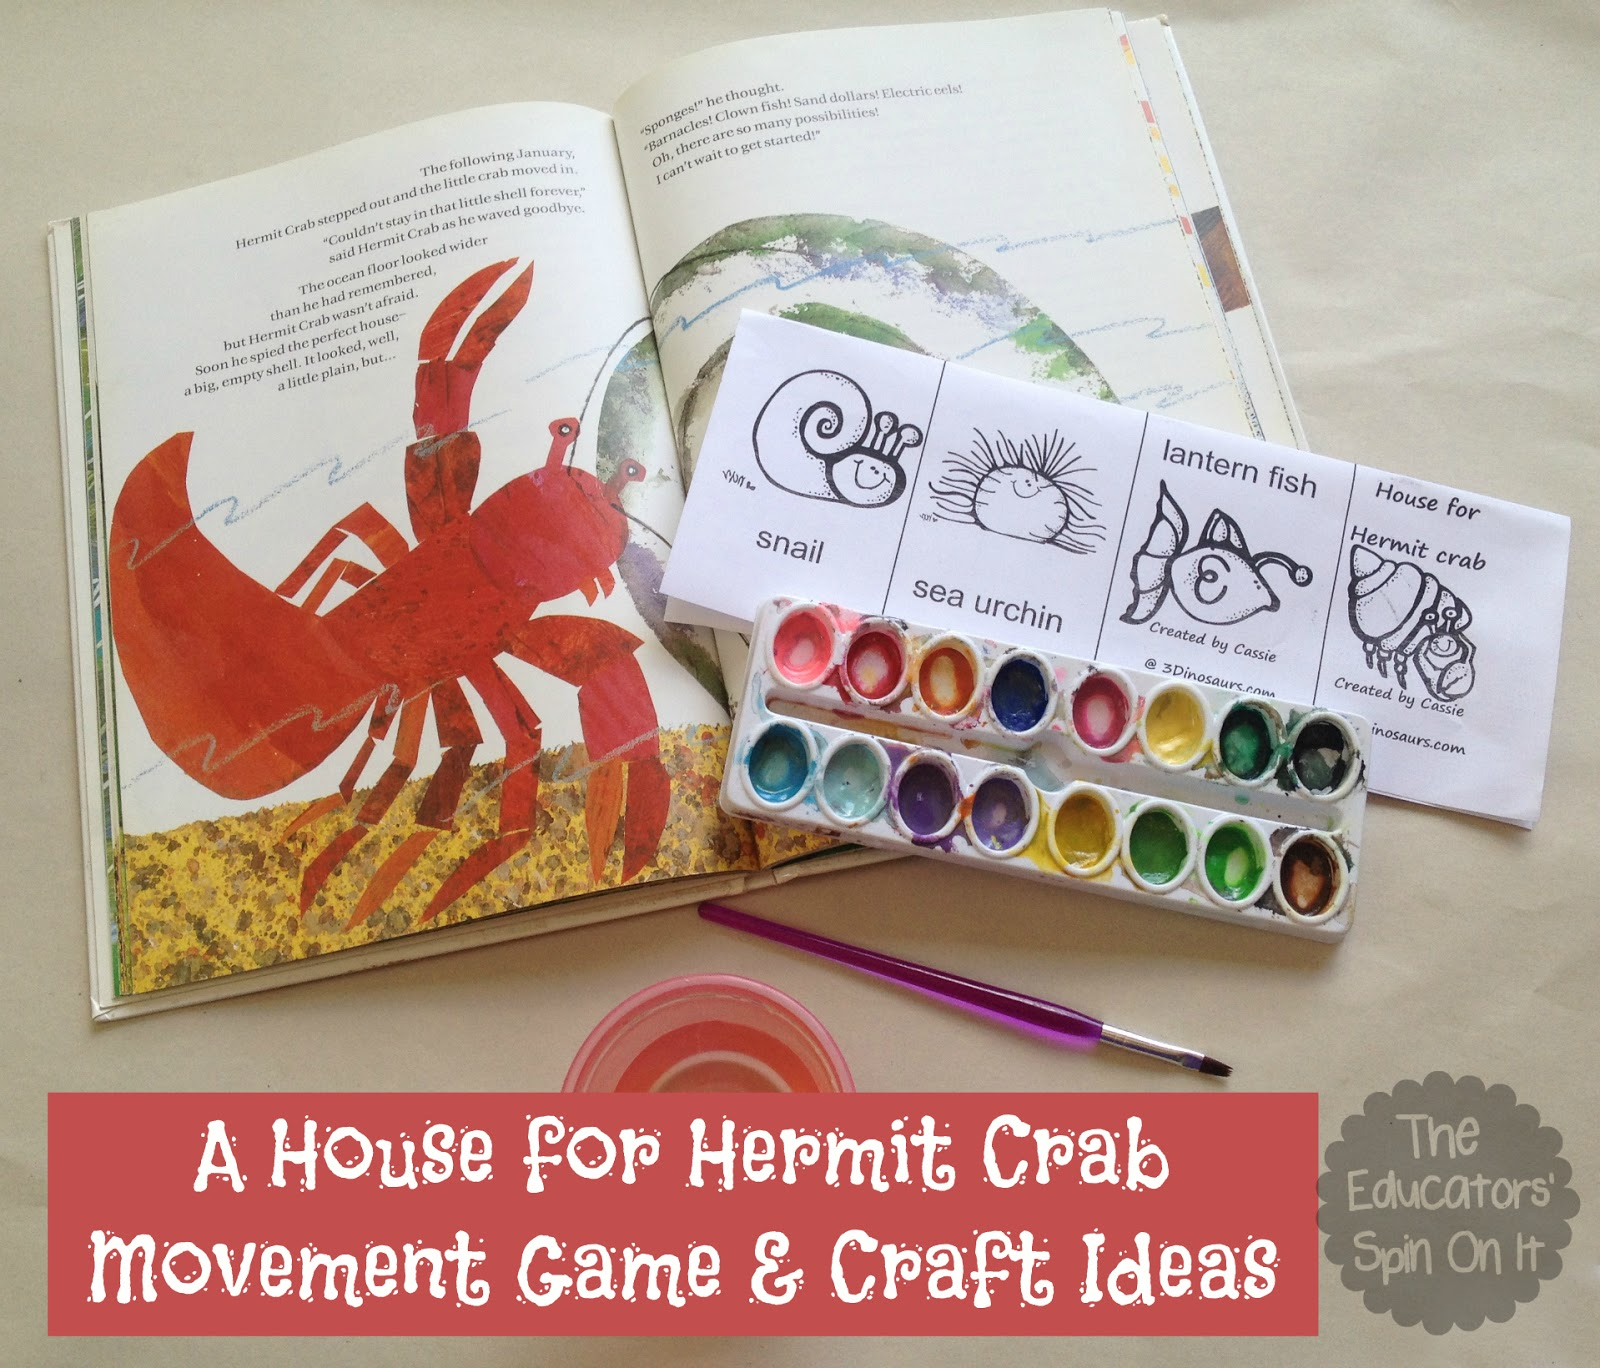 A House for Hermit Crab Activities The Educators Spin On It